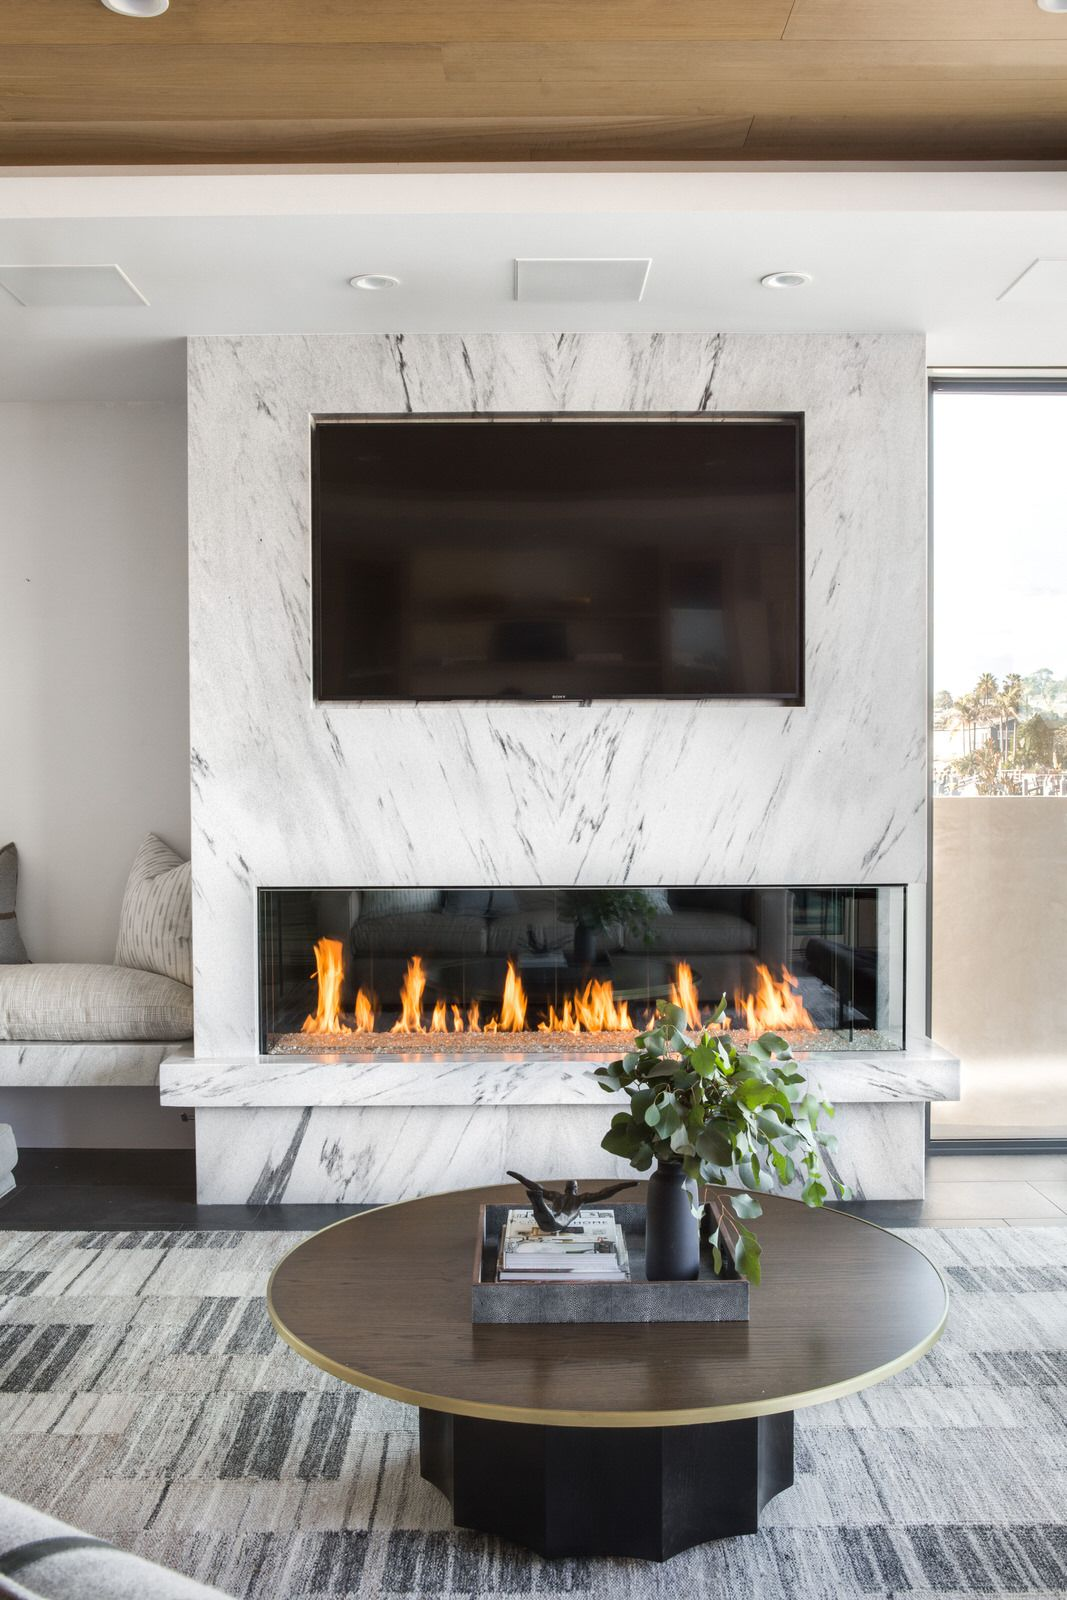 All Marble Fireplace Surround With Inset Tv So Chic And Sophisticated Design By Chad Mellon Home Fireplace Minimalist Fireplace Contemporary Fireplace